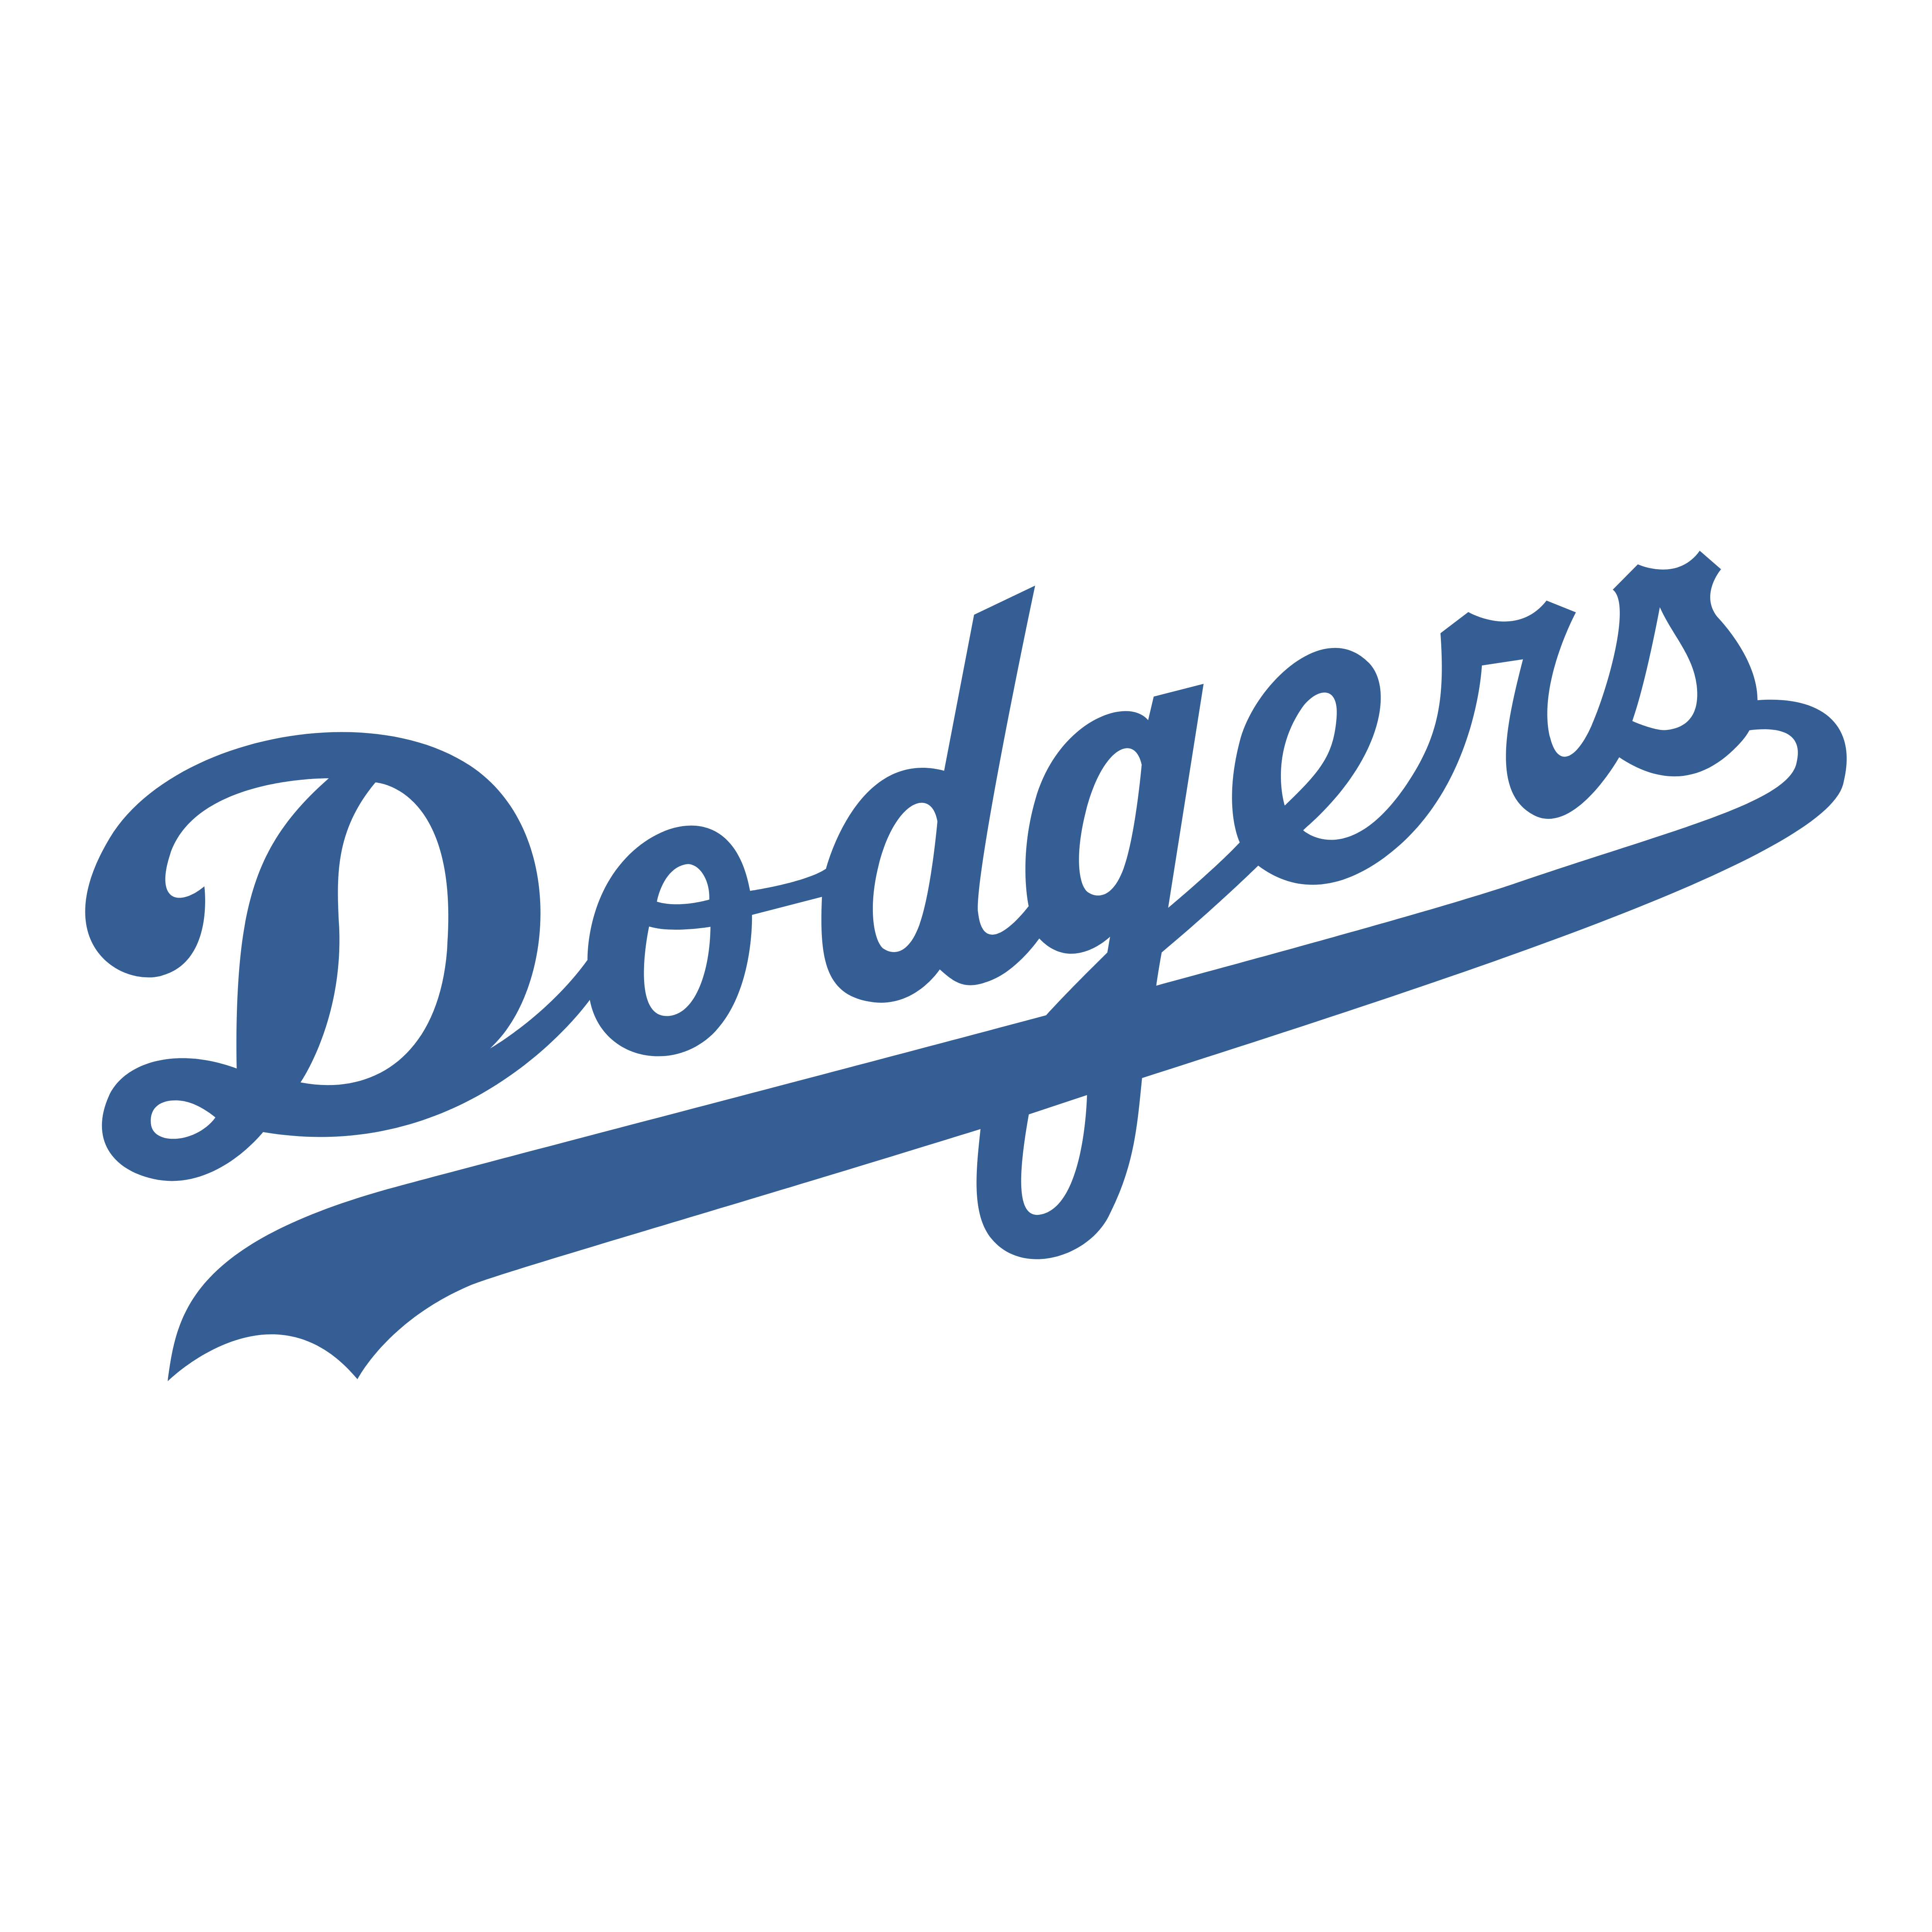 los angeles dodgers logos